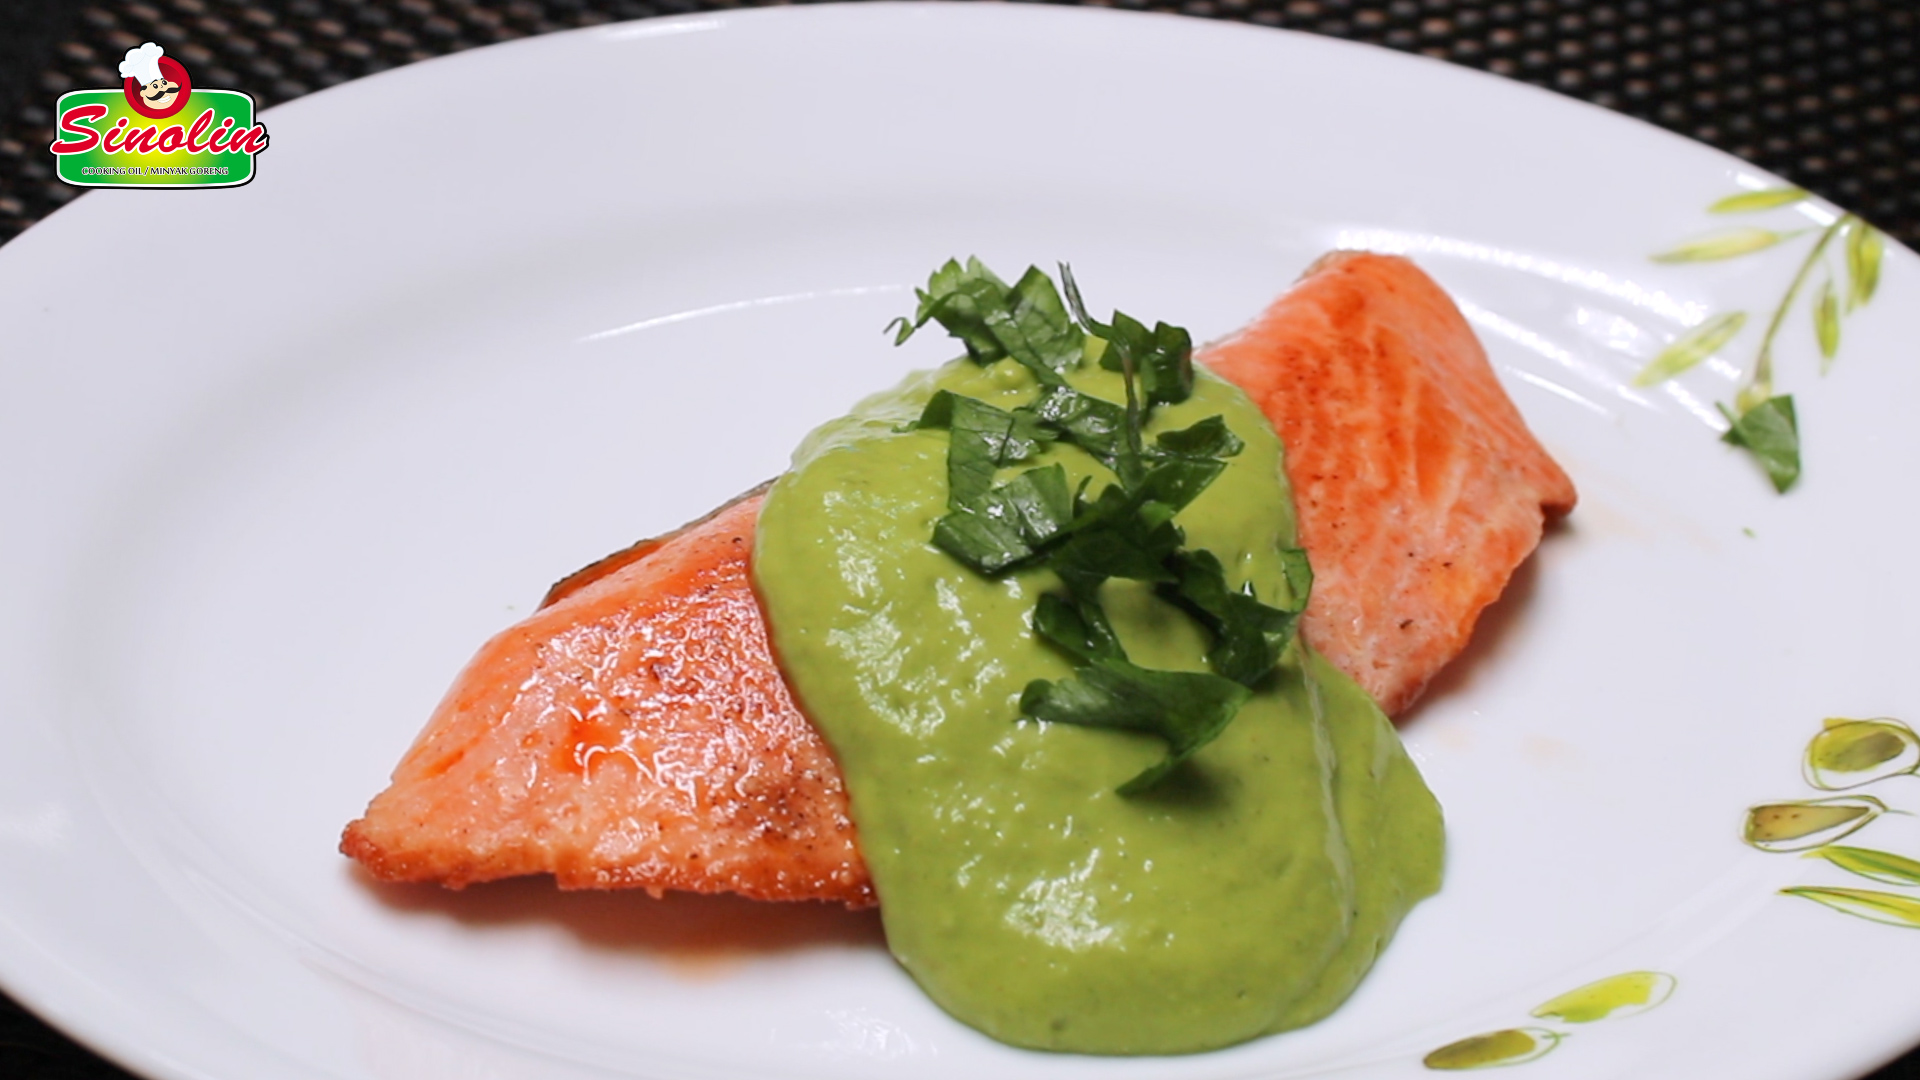 Pan-Seared Salmon with Creamy Avocado Sauce by Dapur Sinolin